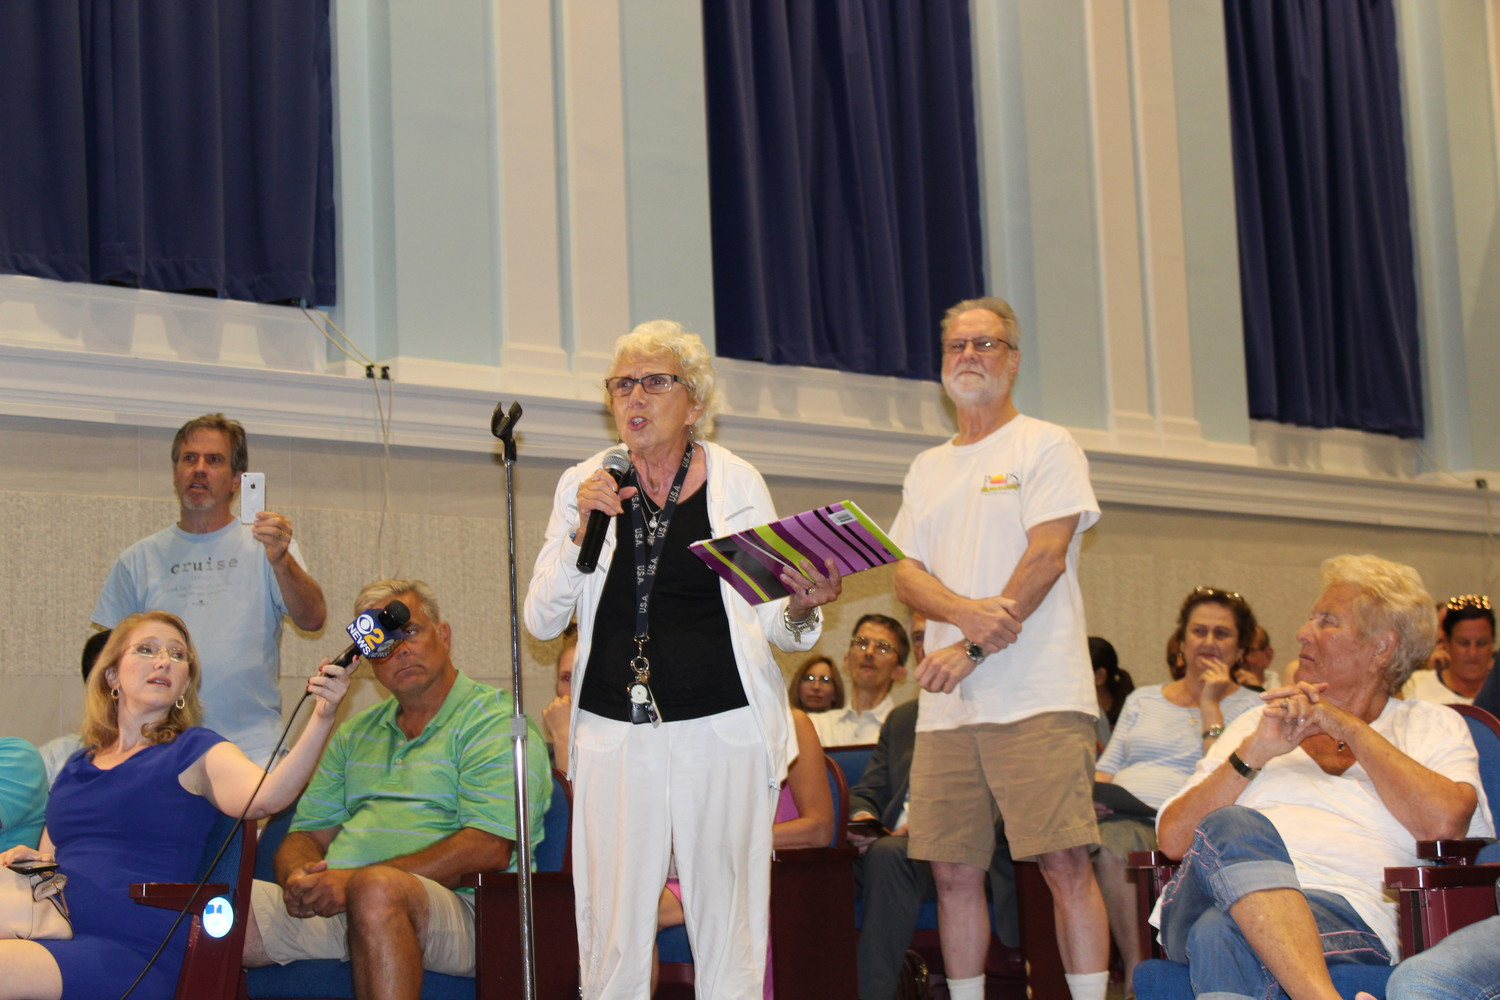 Barbara Levitz, of Island Park, said her water bill had increased by $200.